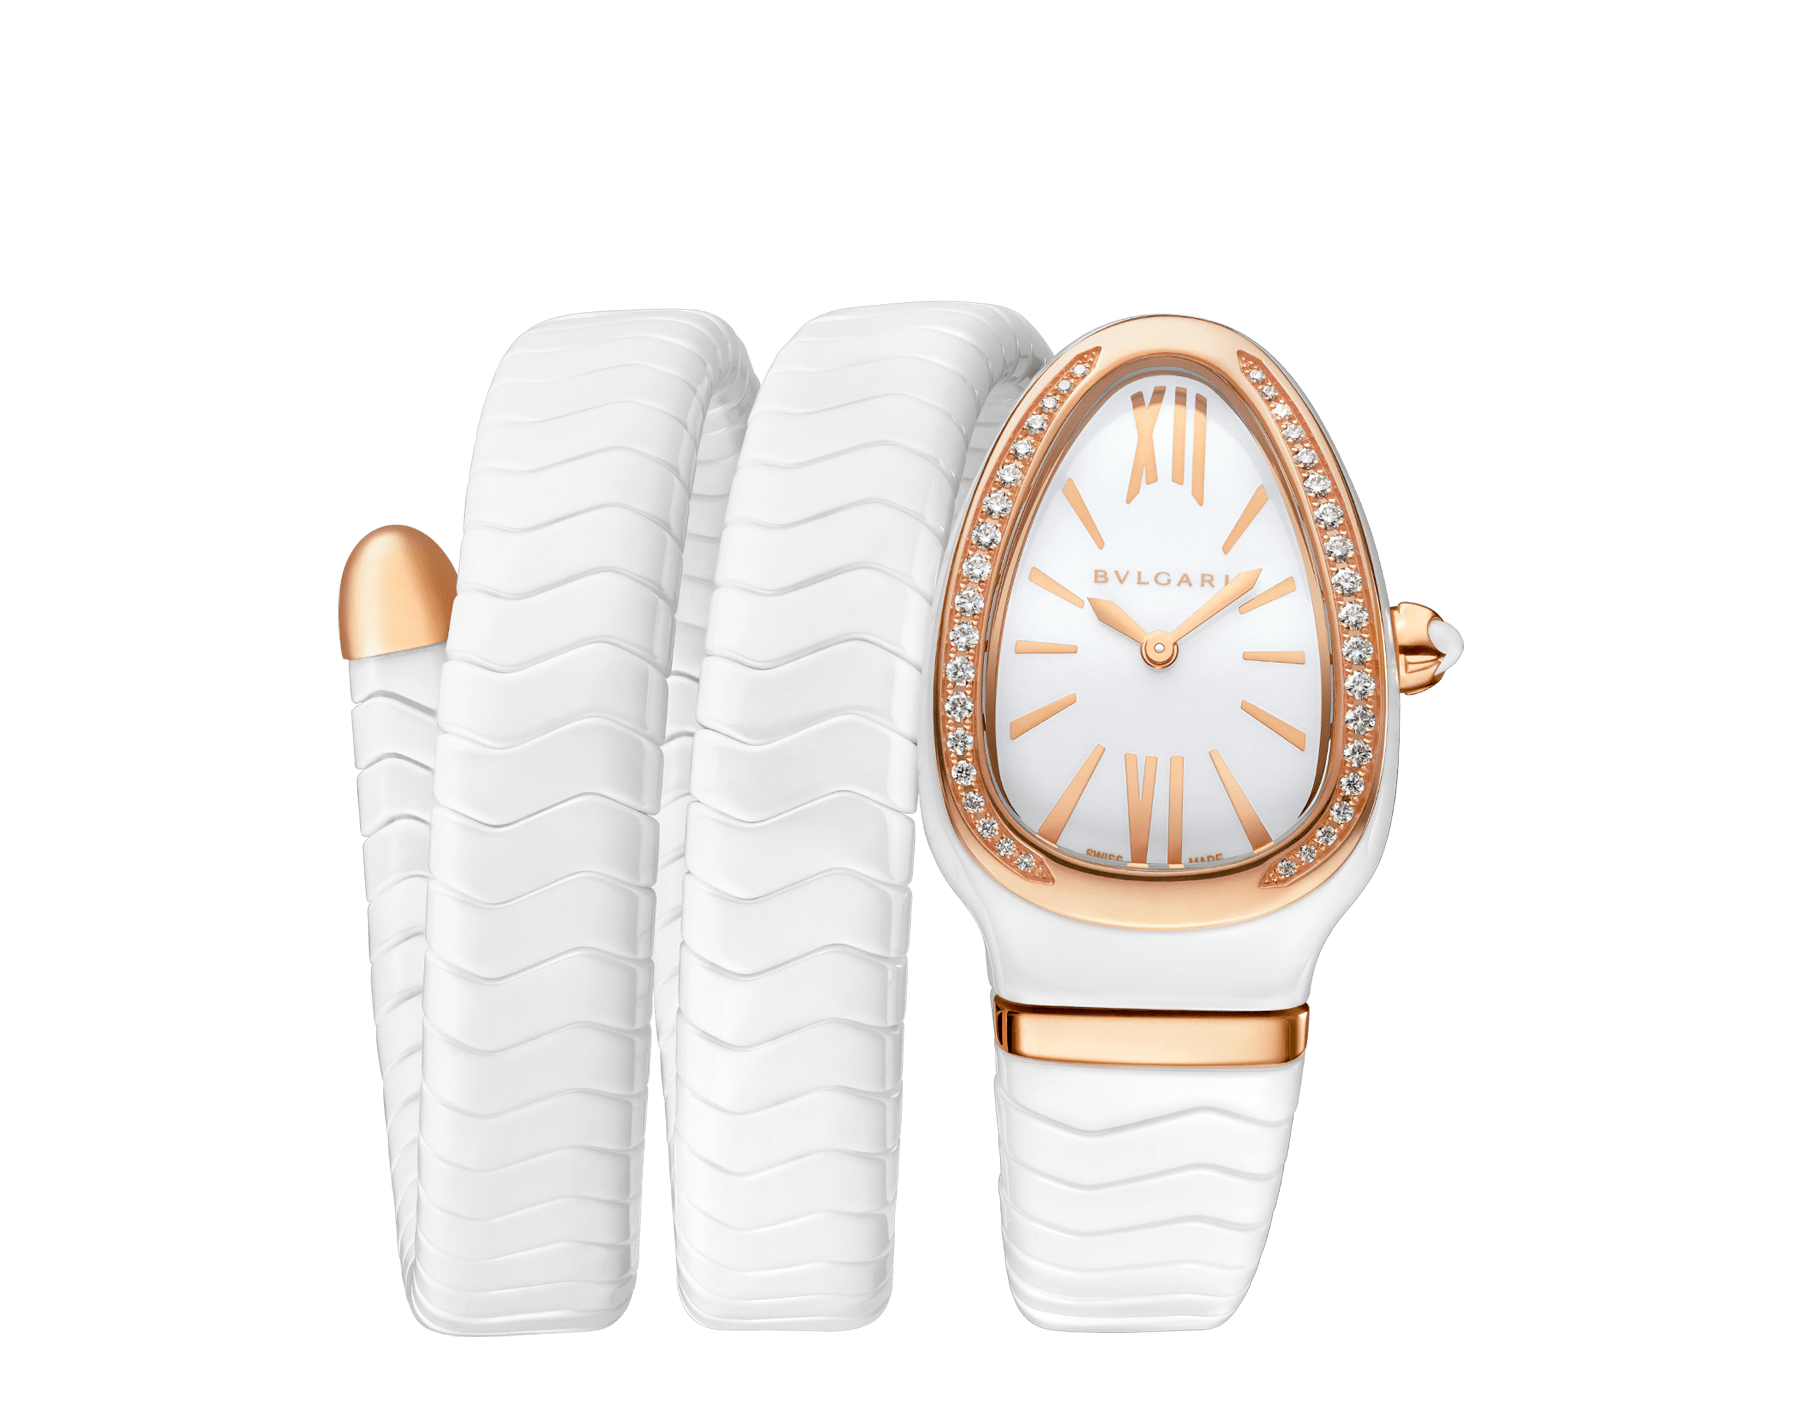 Serpenti Spiga watch with white ceramic case, 18 kt rose gold bezel set with diamonds, white lacquered polished dial and double spiral bracelet in white ceramic and 18 kt rose gold elements. 102886 image 1